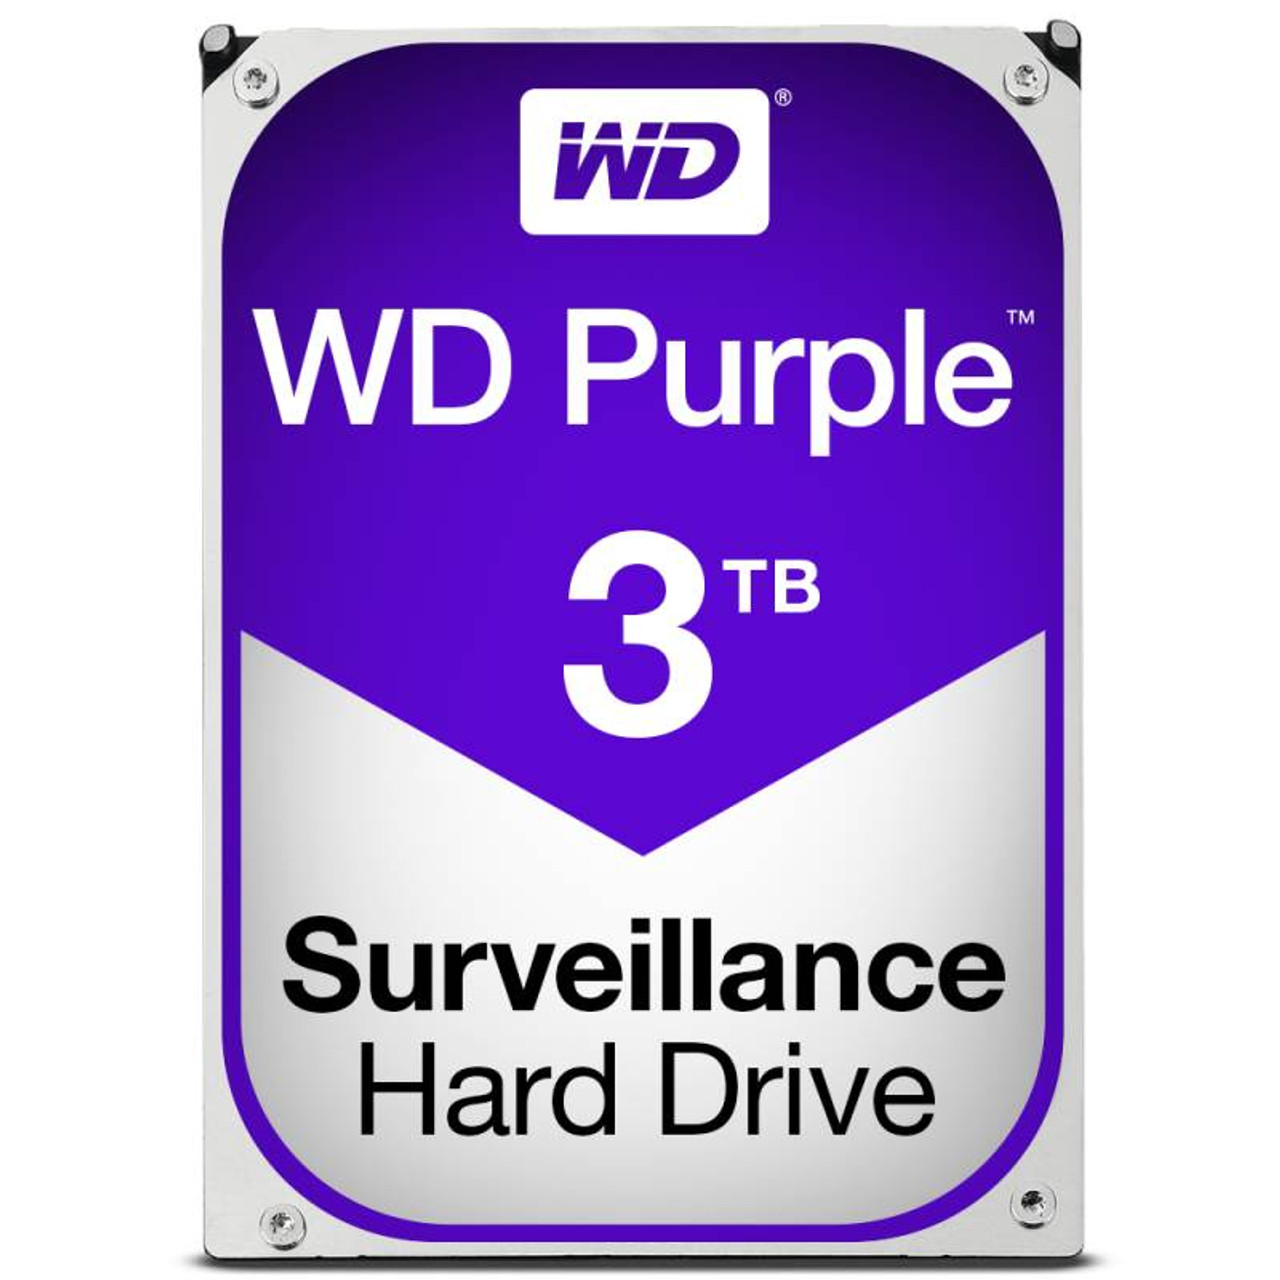 Product image for Western Digital WD Purple 3TB Surveillance Hard Drive   CX Computer Superstore